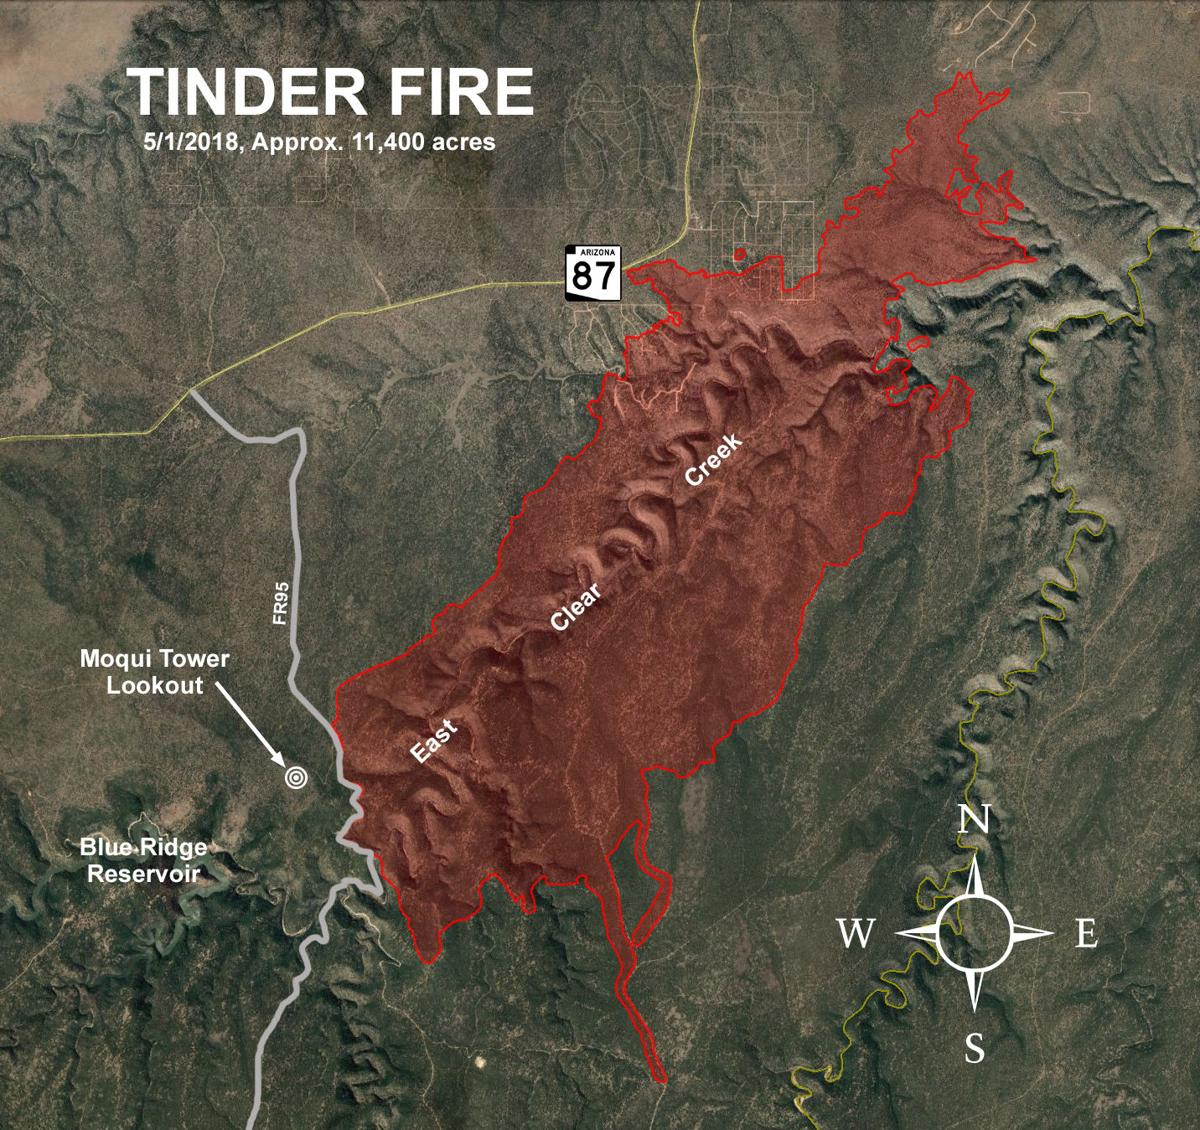 Illegal campfire to blame for start of Tinder Fire | Arizona